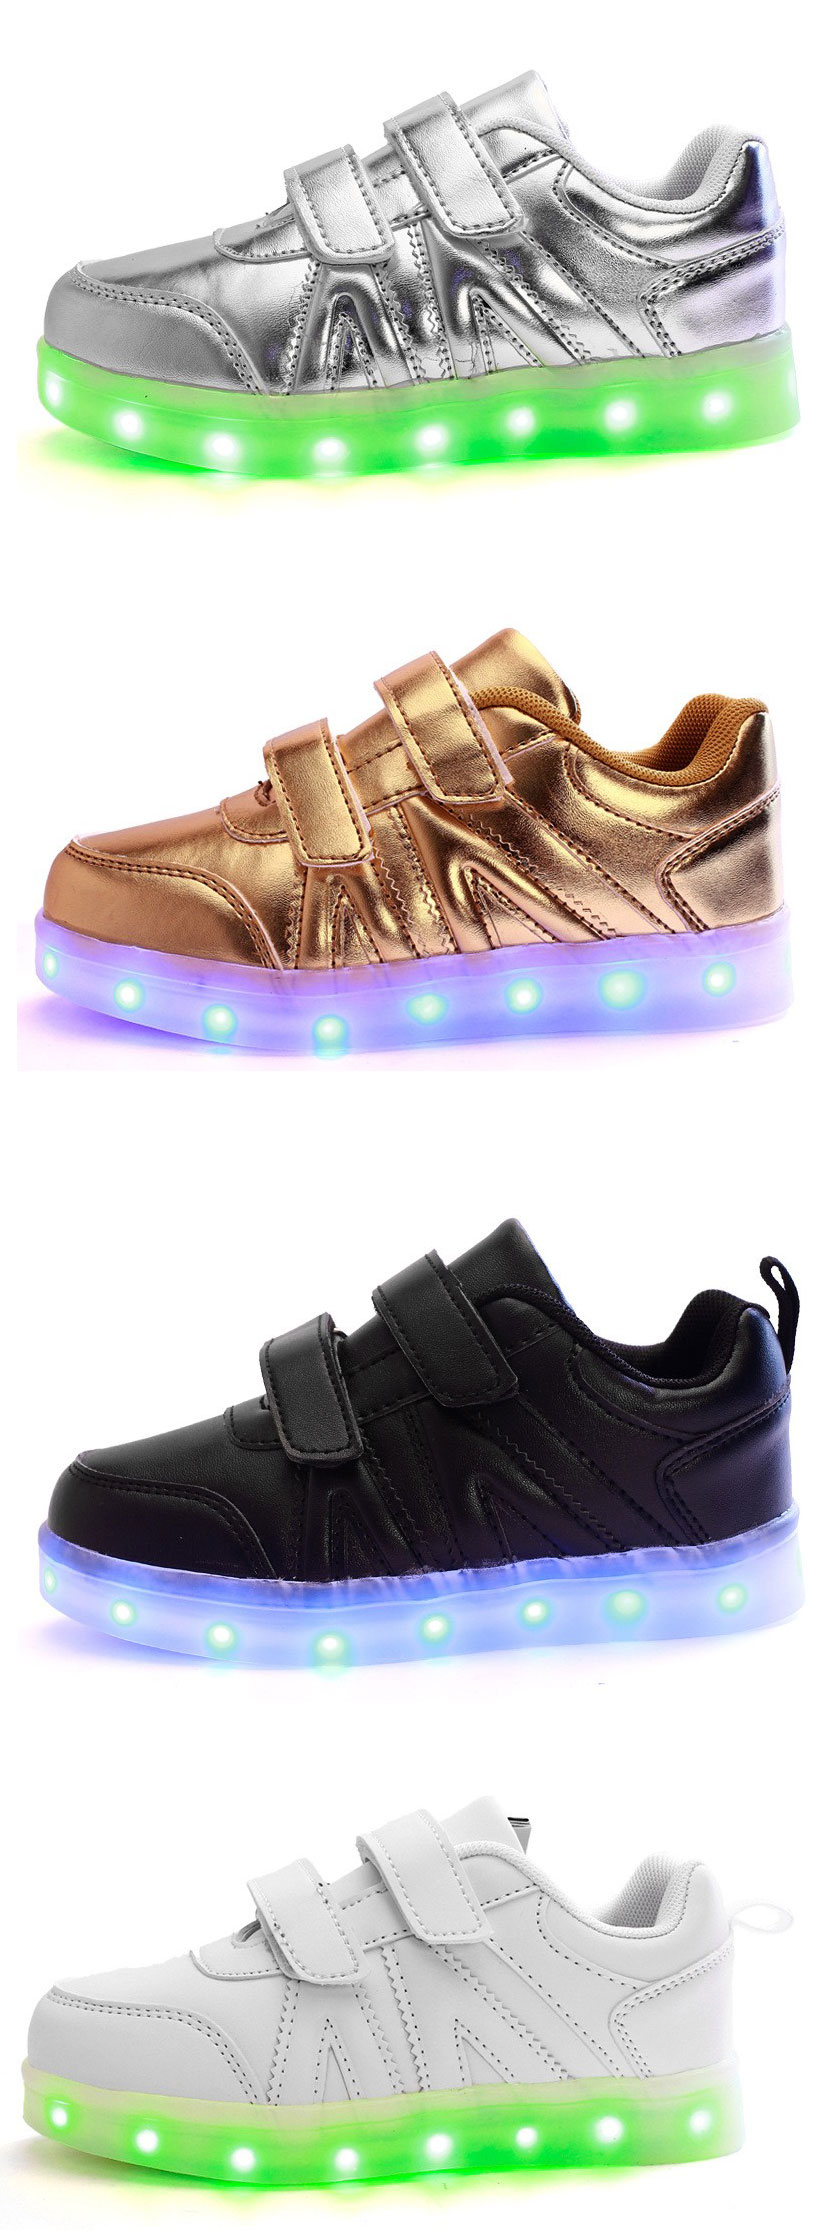 Kids LED Light Shoes Sneakers Leather Casual Boy Girl Shoes Children New